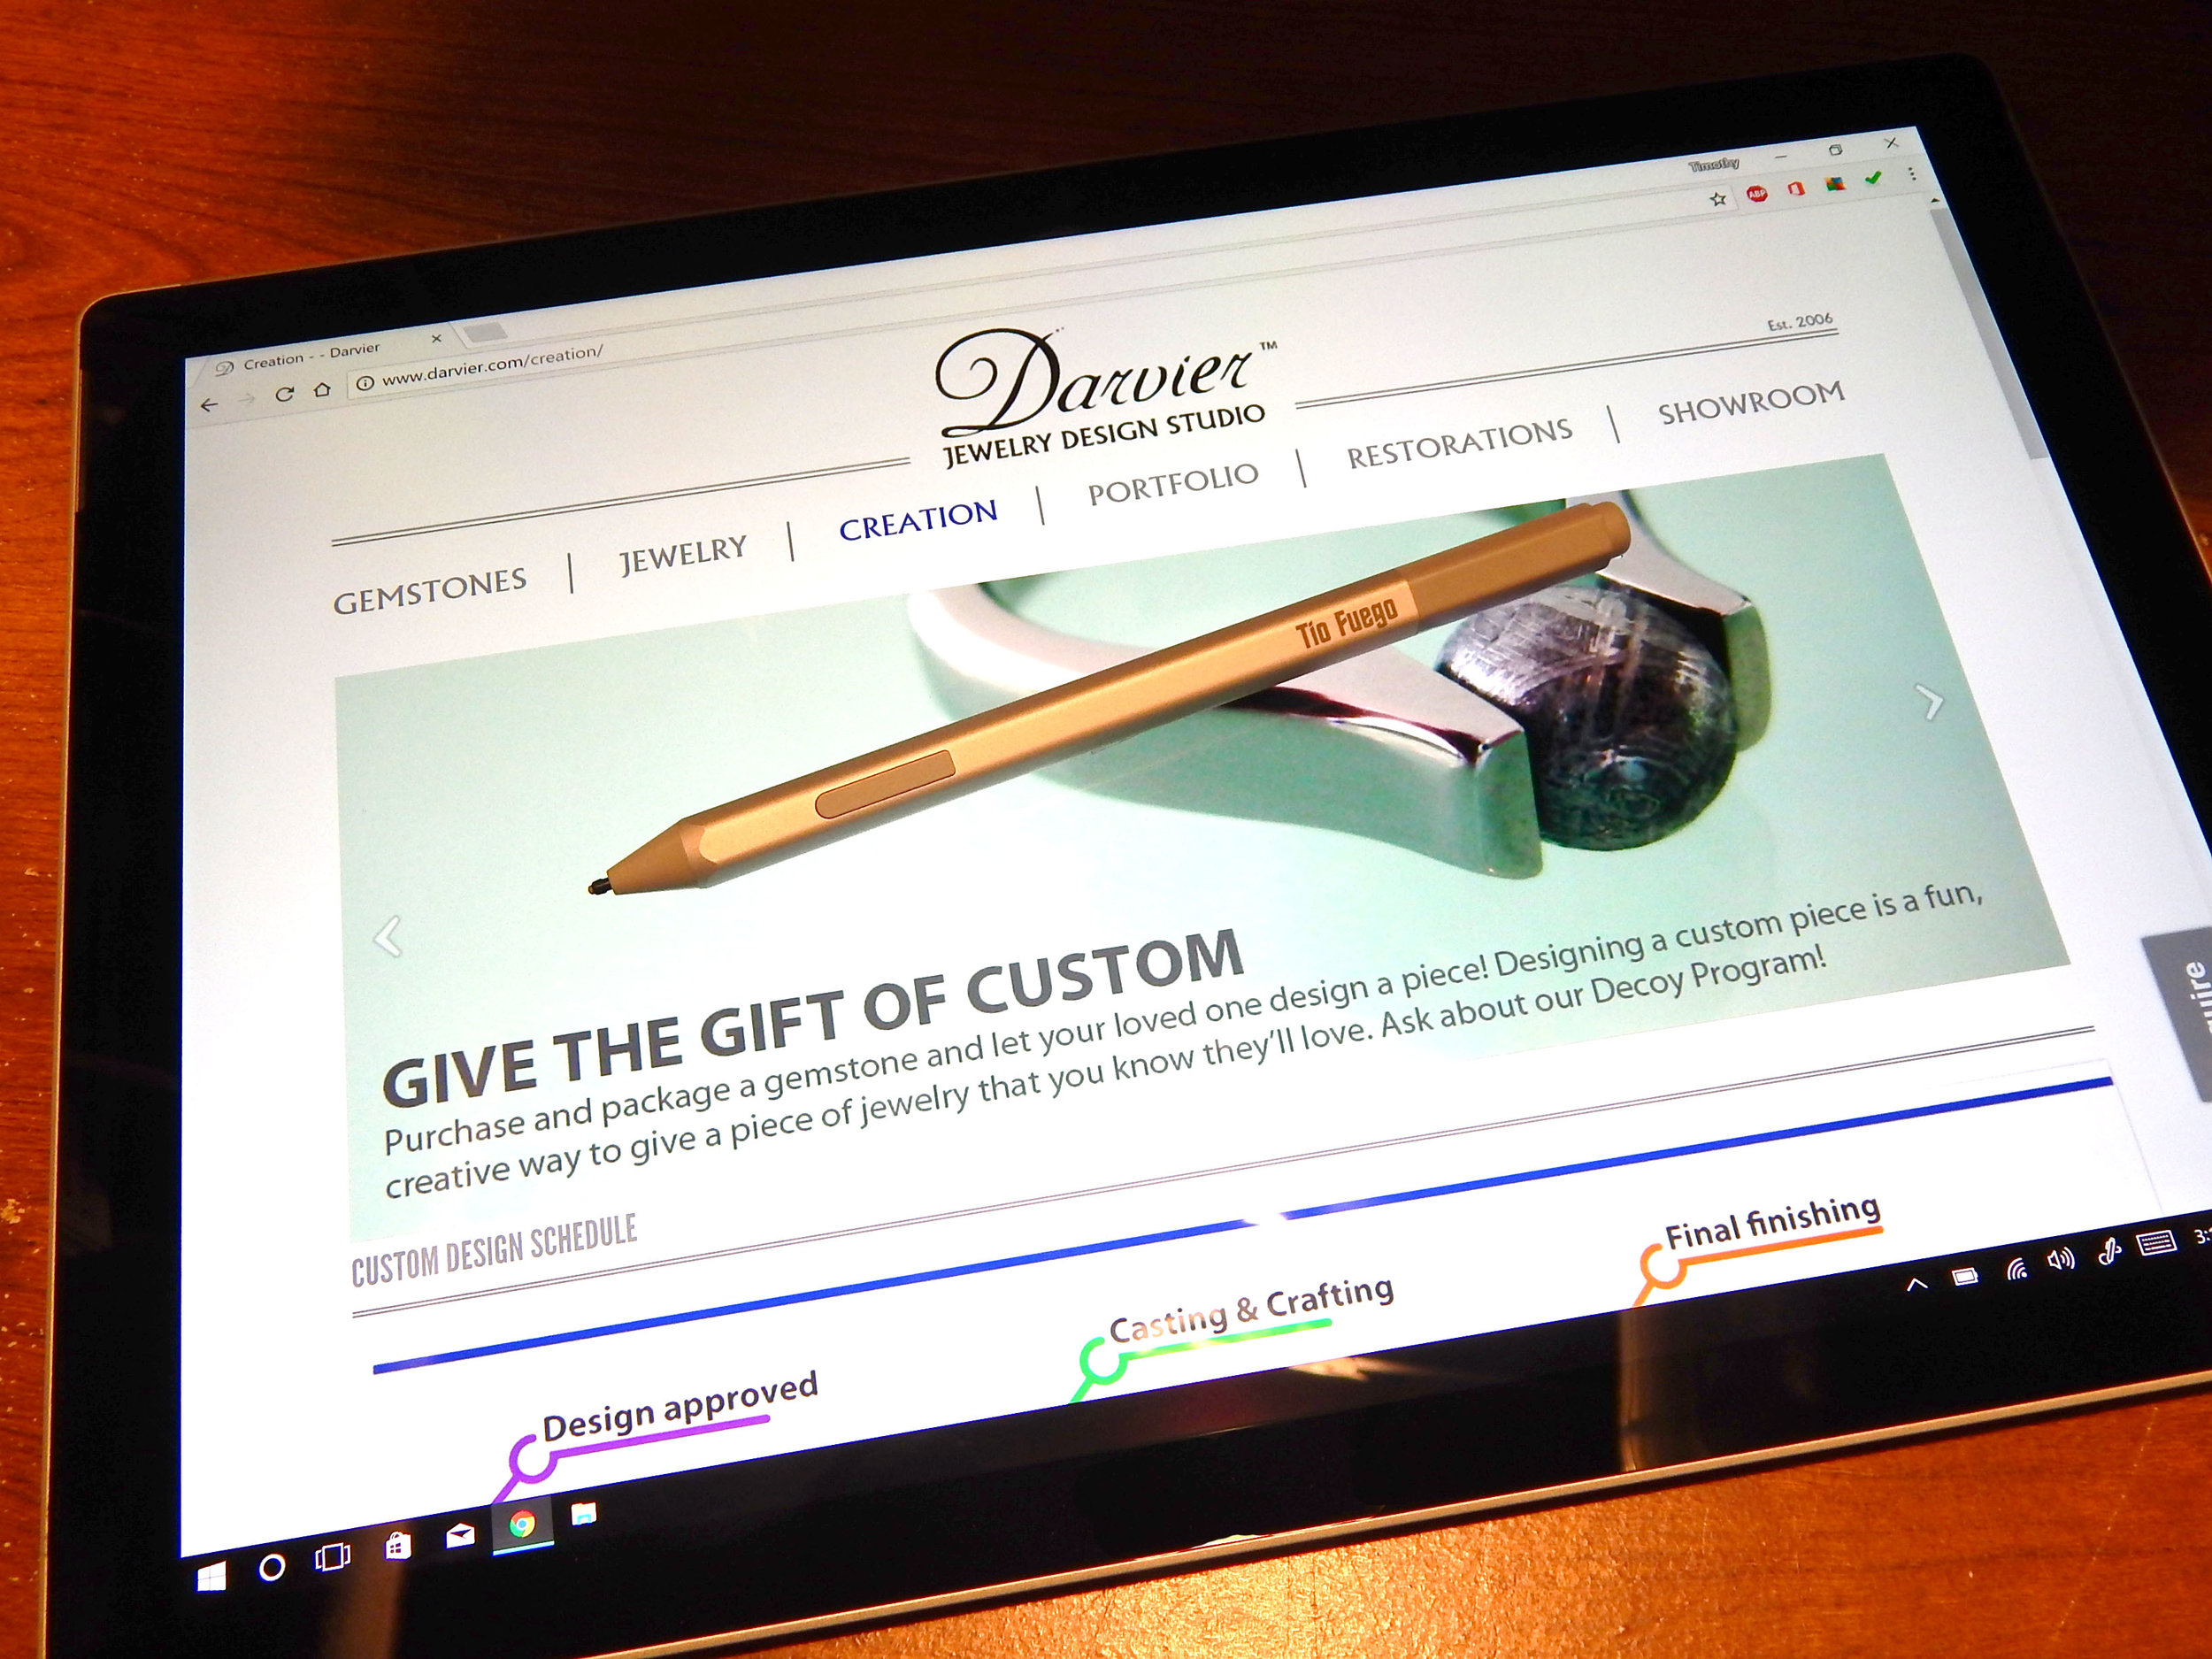 darvier-get-your-gift-certificate-for-custom.JPG